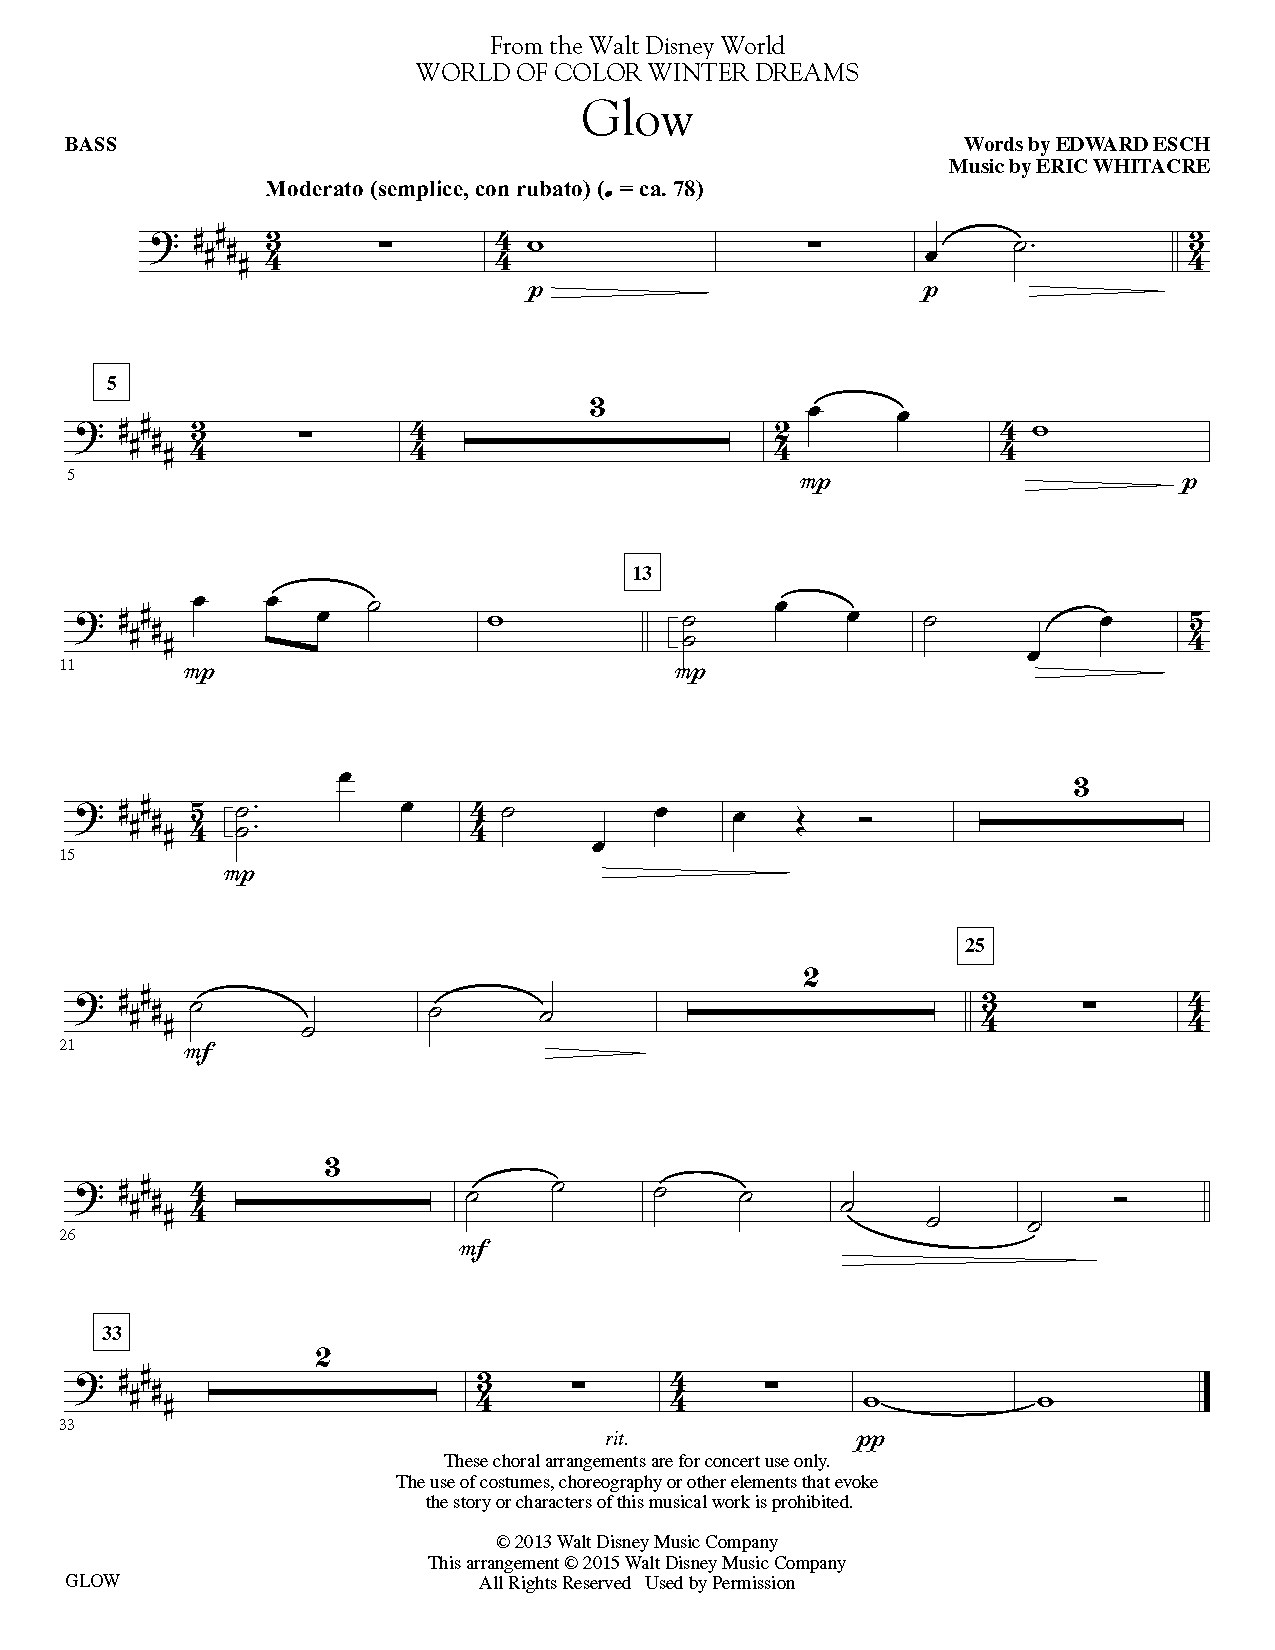 Glow - Bass Sheet Music